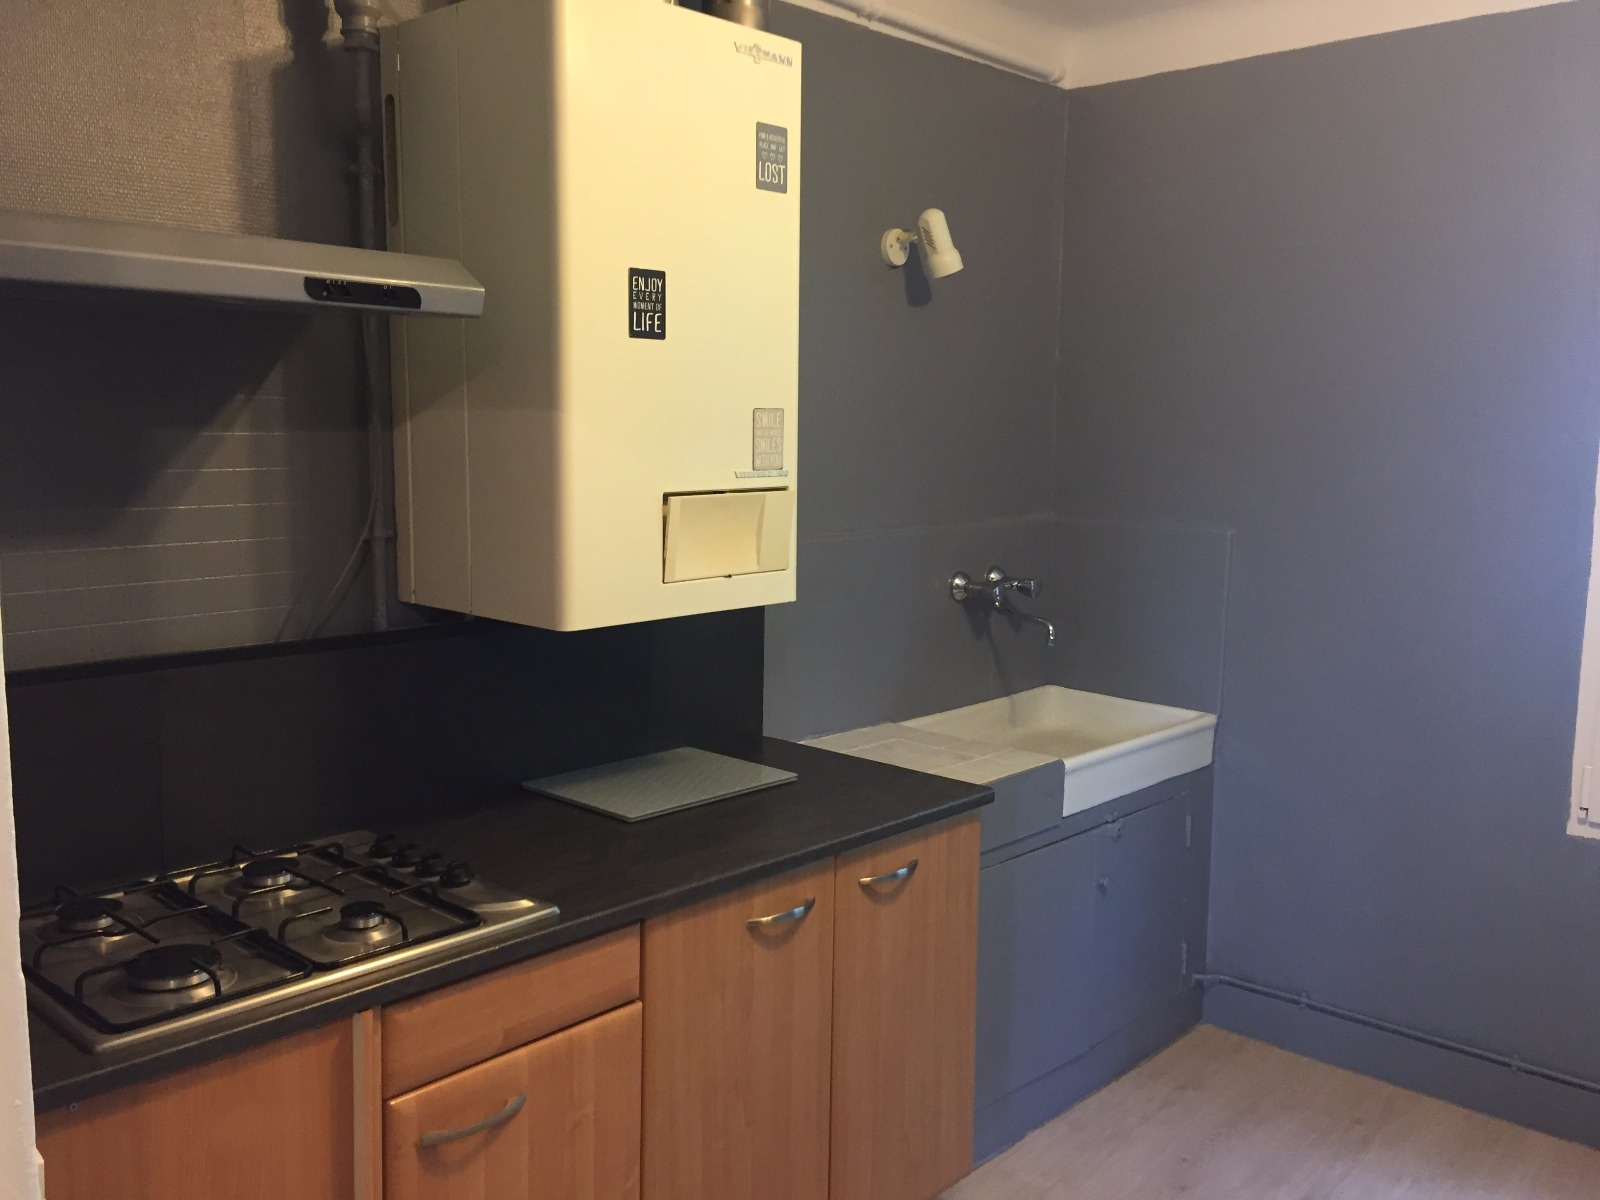 Annonce location appartement rethel 08300 80 m 590 for 08300 rethel